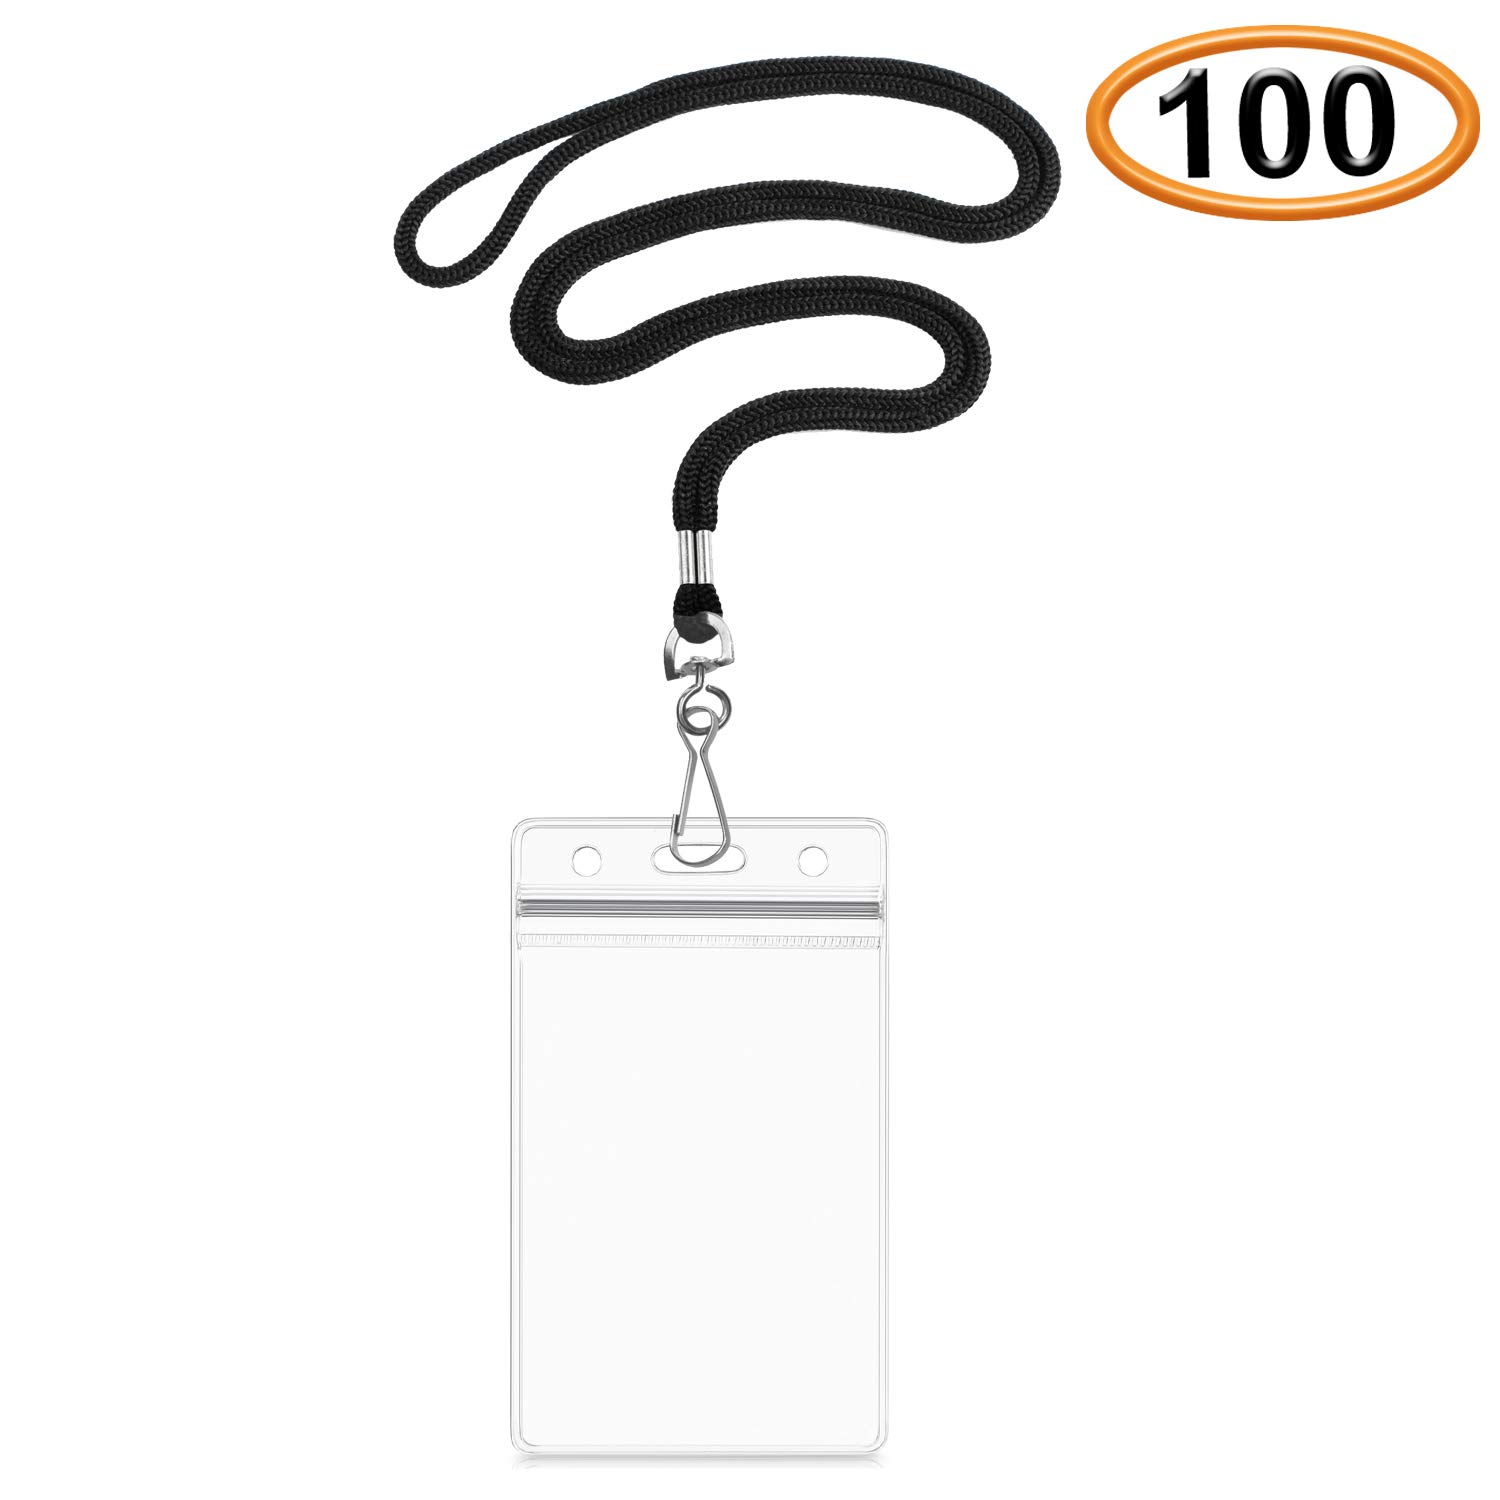 Summerhouse 100 Pack Transparent Plastic ID Name Tags Badge Holder and Woven 36'' Lanyard - Vertical Fit 2.4x3.6'' Card - for Conference Workshop Meeting Exhibition School